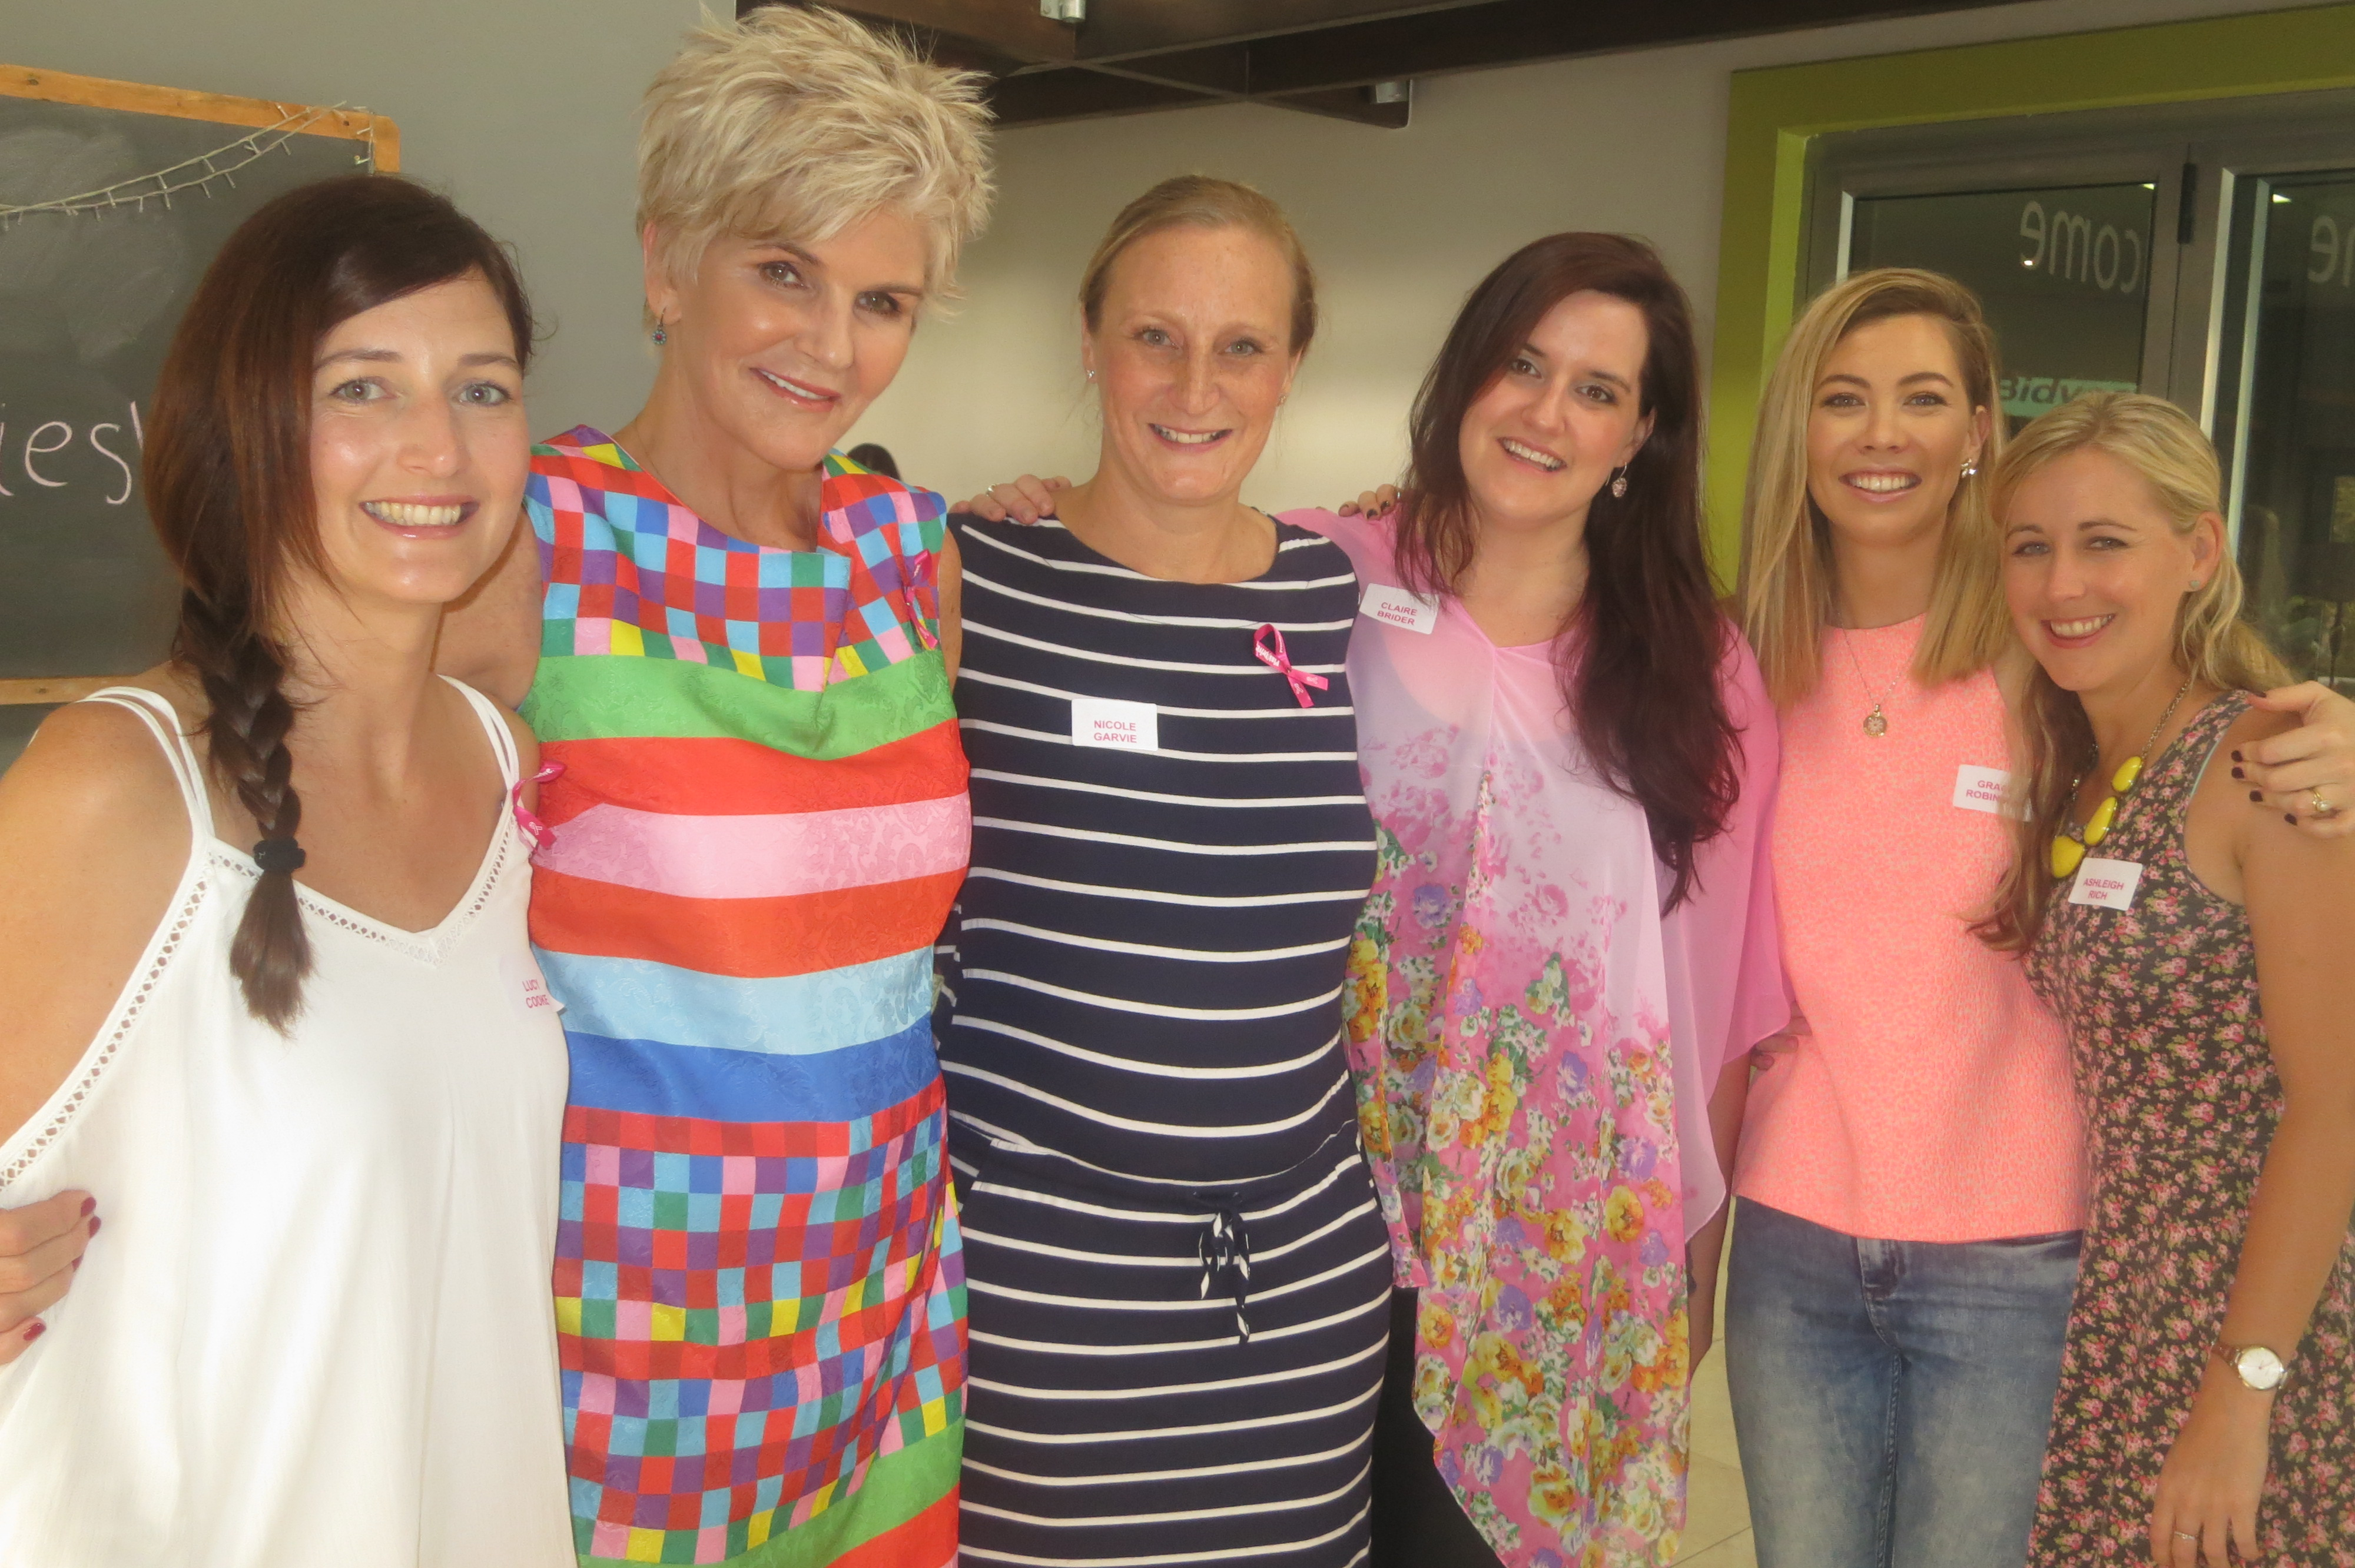 Lucy Cooke, PJ Powers, Nicole Garvie, Claire Brider, Grace Winter and Ashleigh Rich